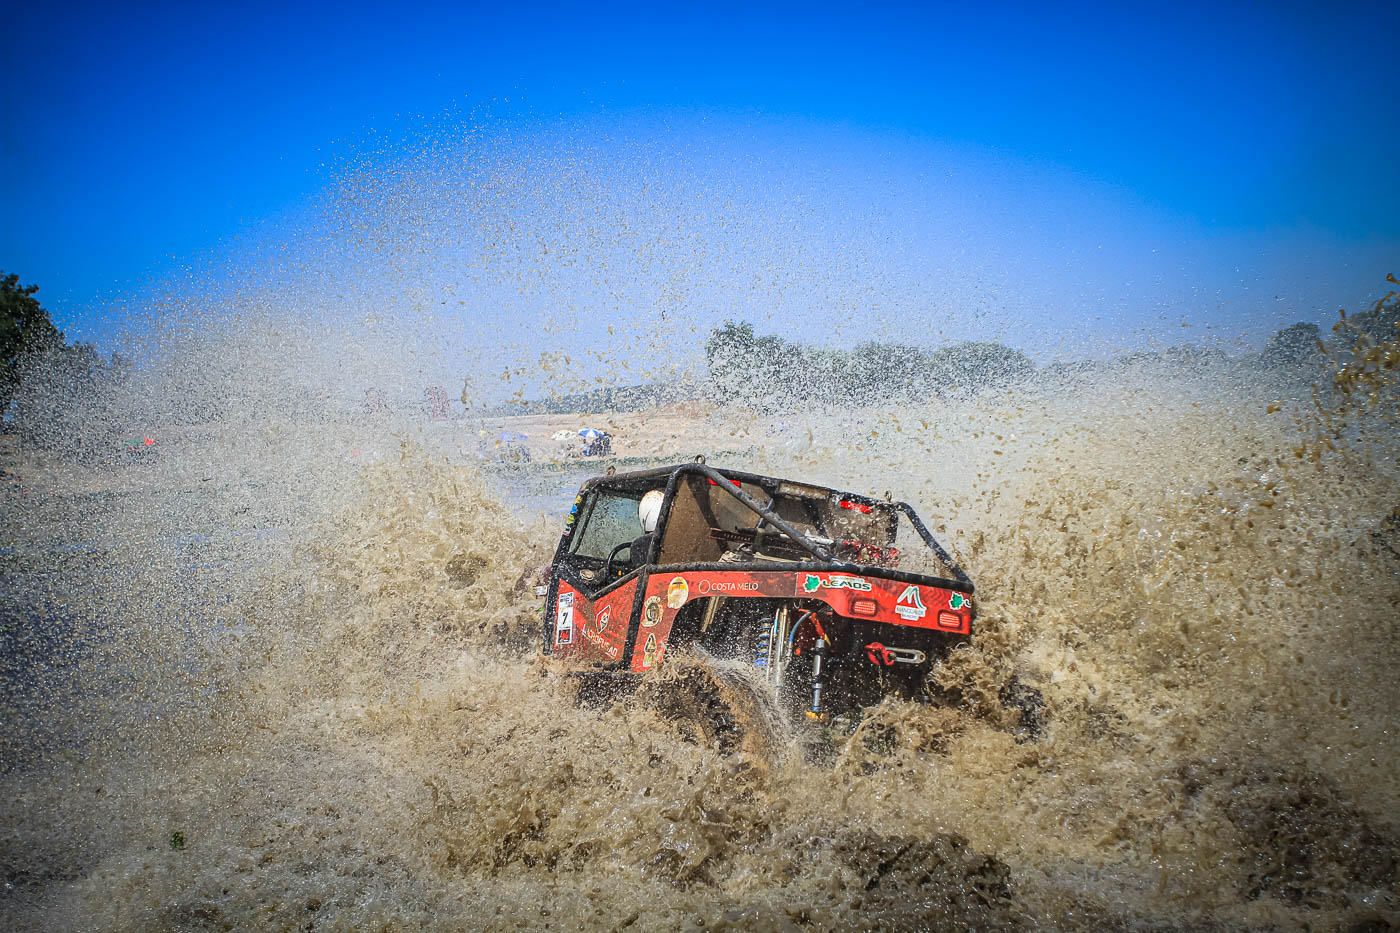 CISET 4X4: X-ADVENTURE PREPARA O REGRESSO DO CISET 4X4